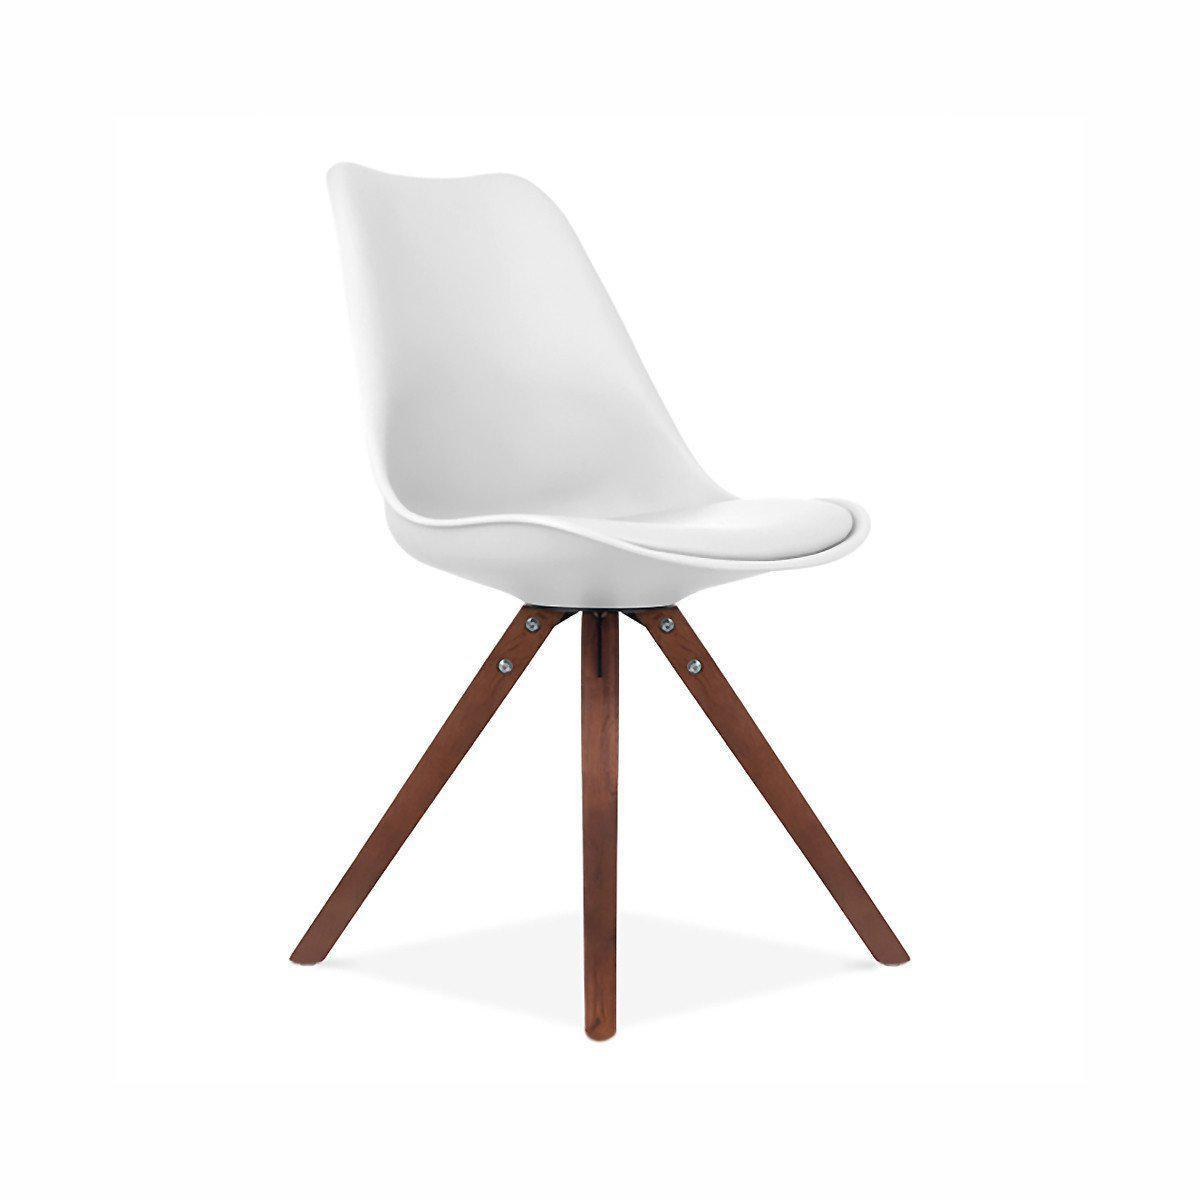 SET OF 2 Viborg White Side Chair Walnut Base-DESIGN LAB MN-Peccadilly